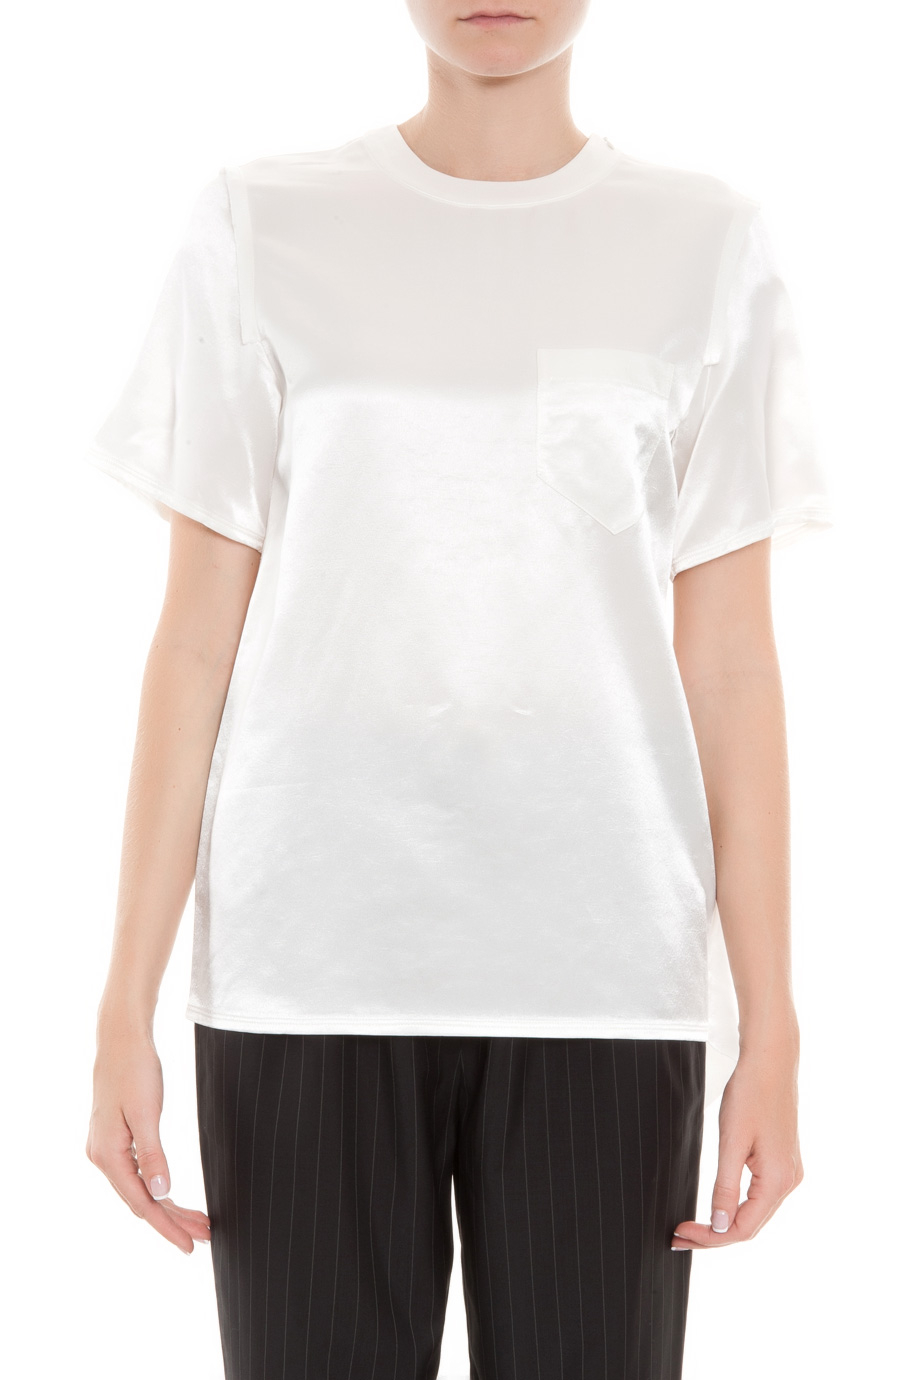 alexander wang t shirt with distressed back in white lyst. Black Bedroom Furniture Sets. Home Design Ideas